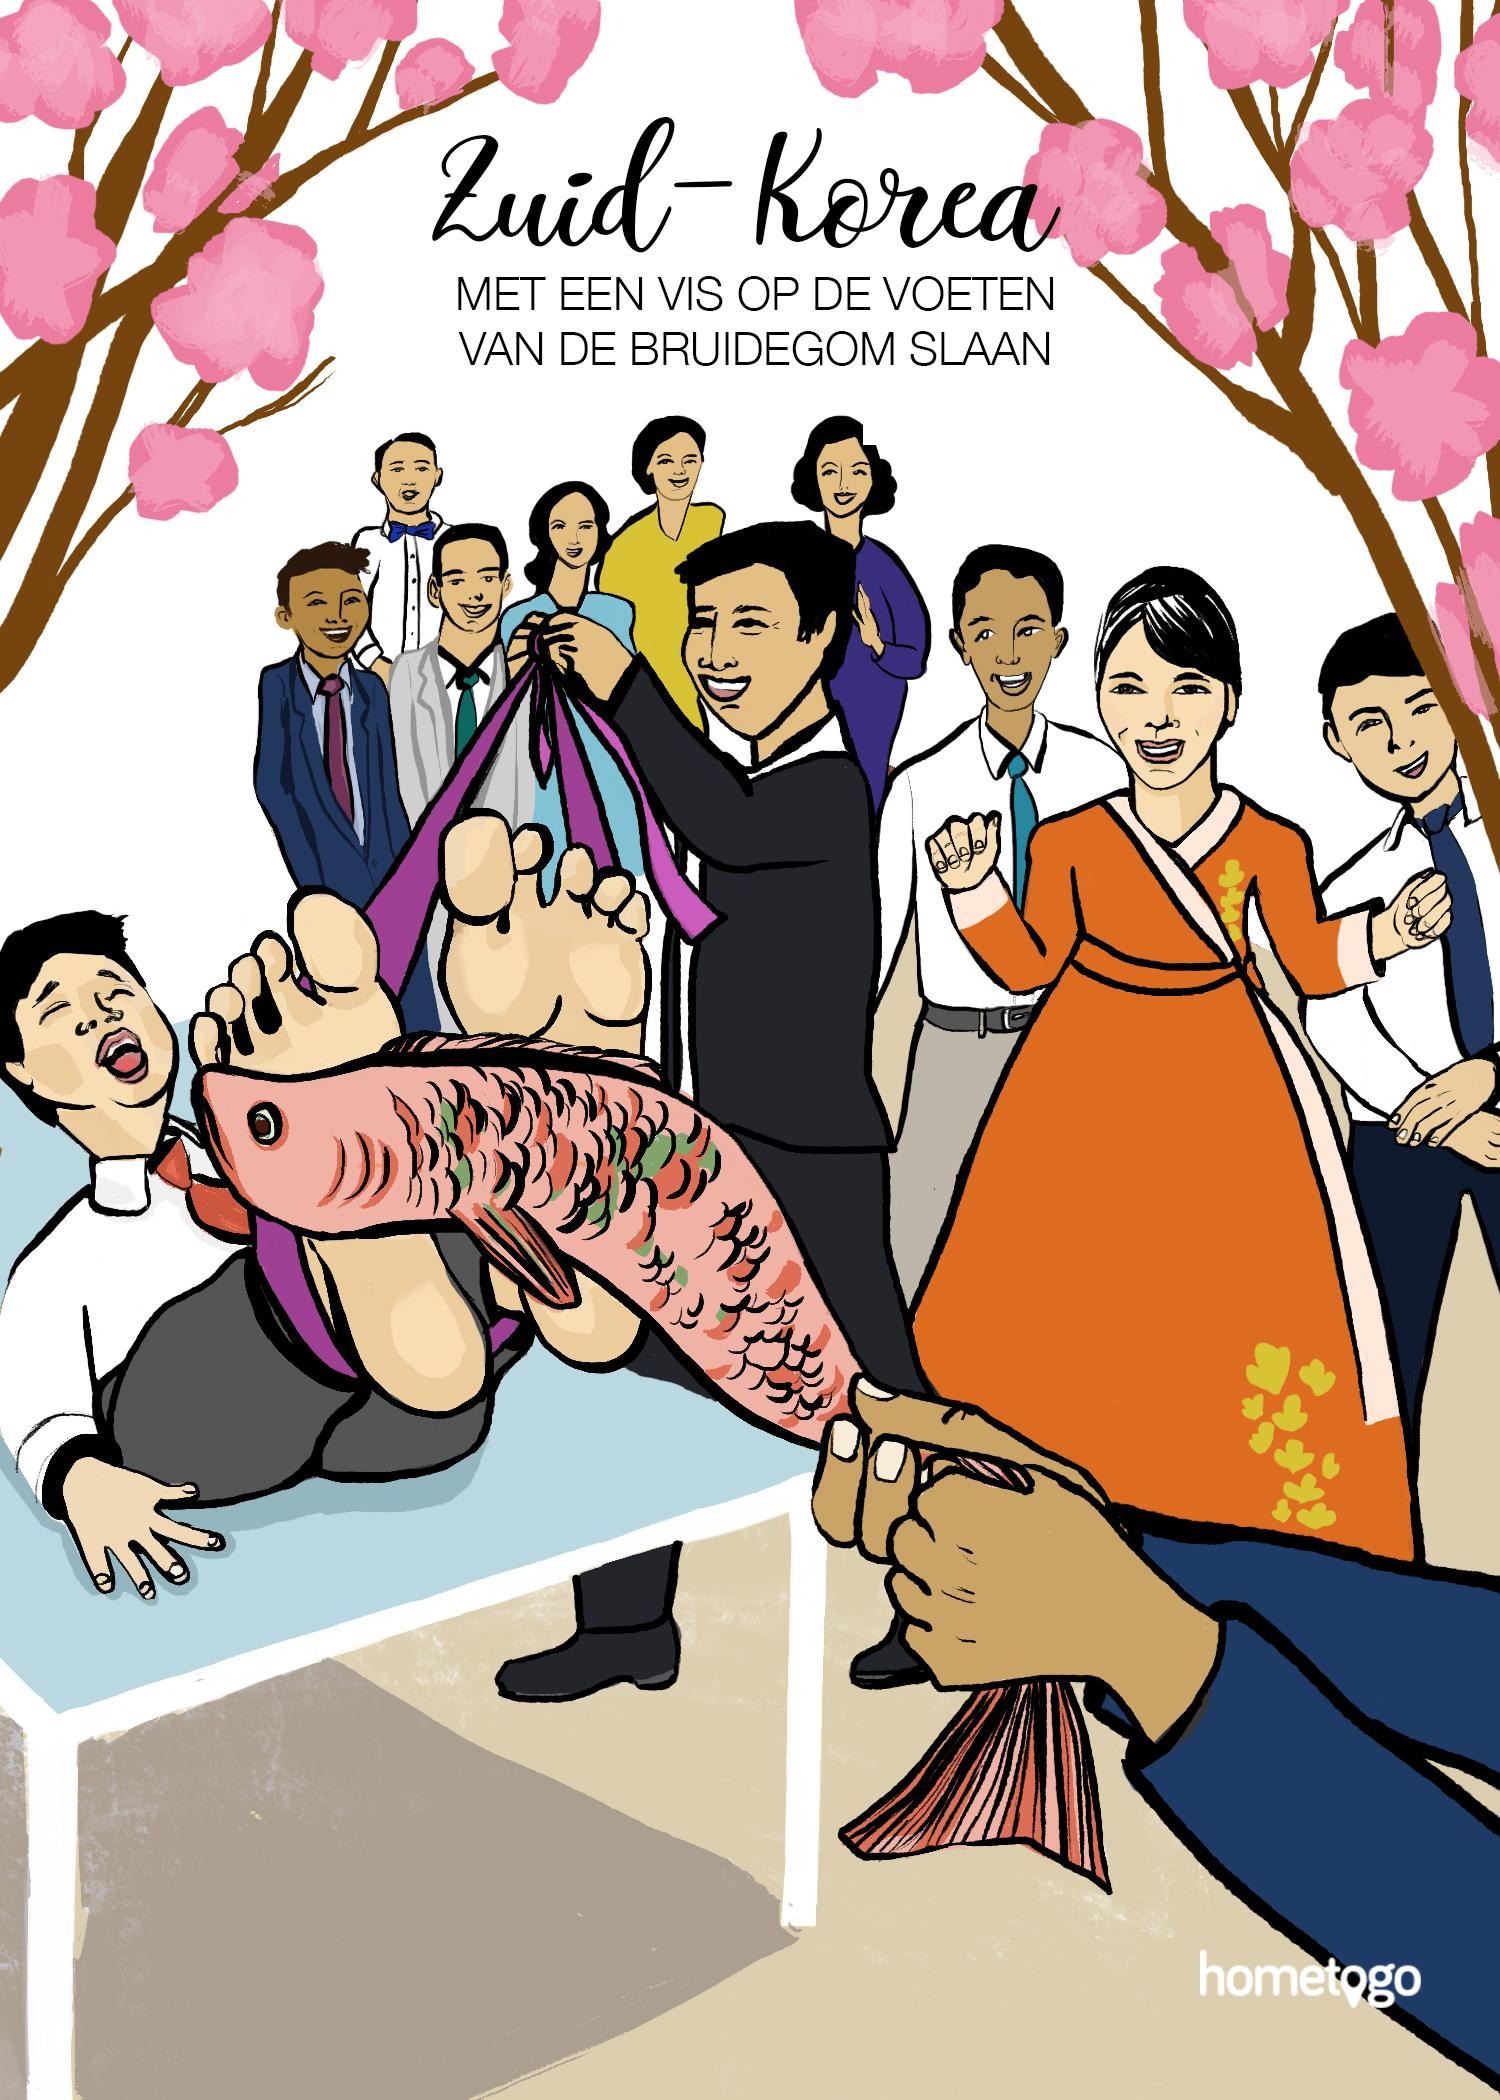 Illustration featuring the wedding custom from Korea, where friends slap the feet of the groom with a fish